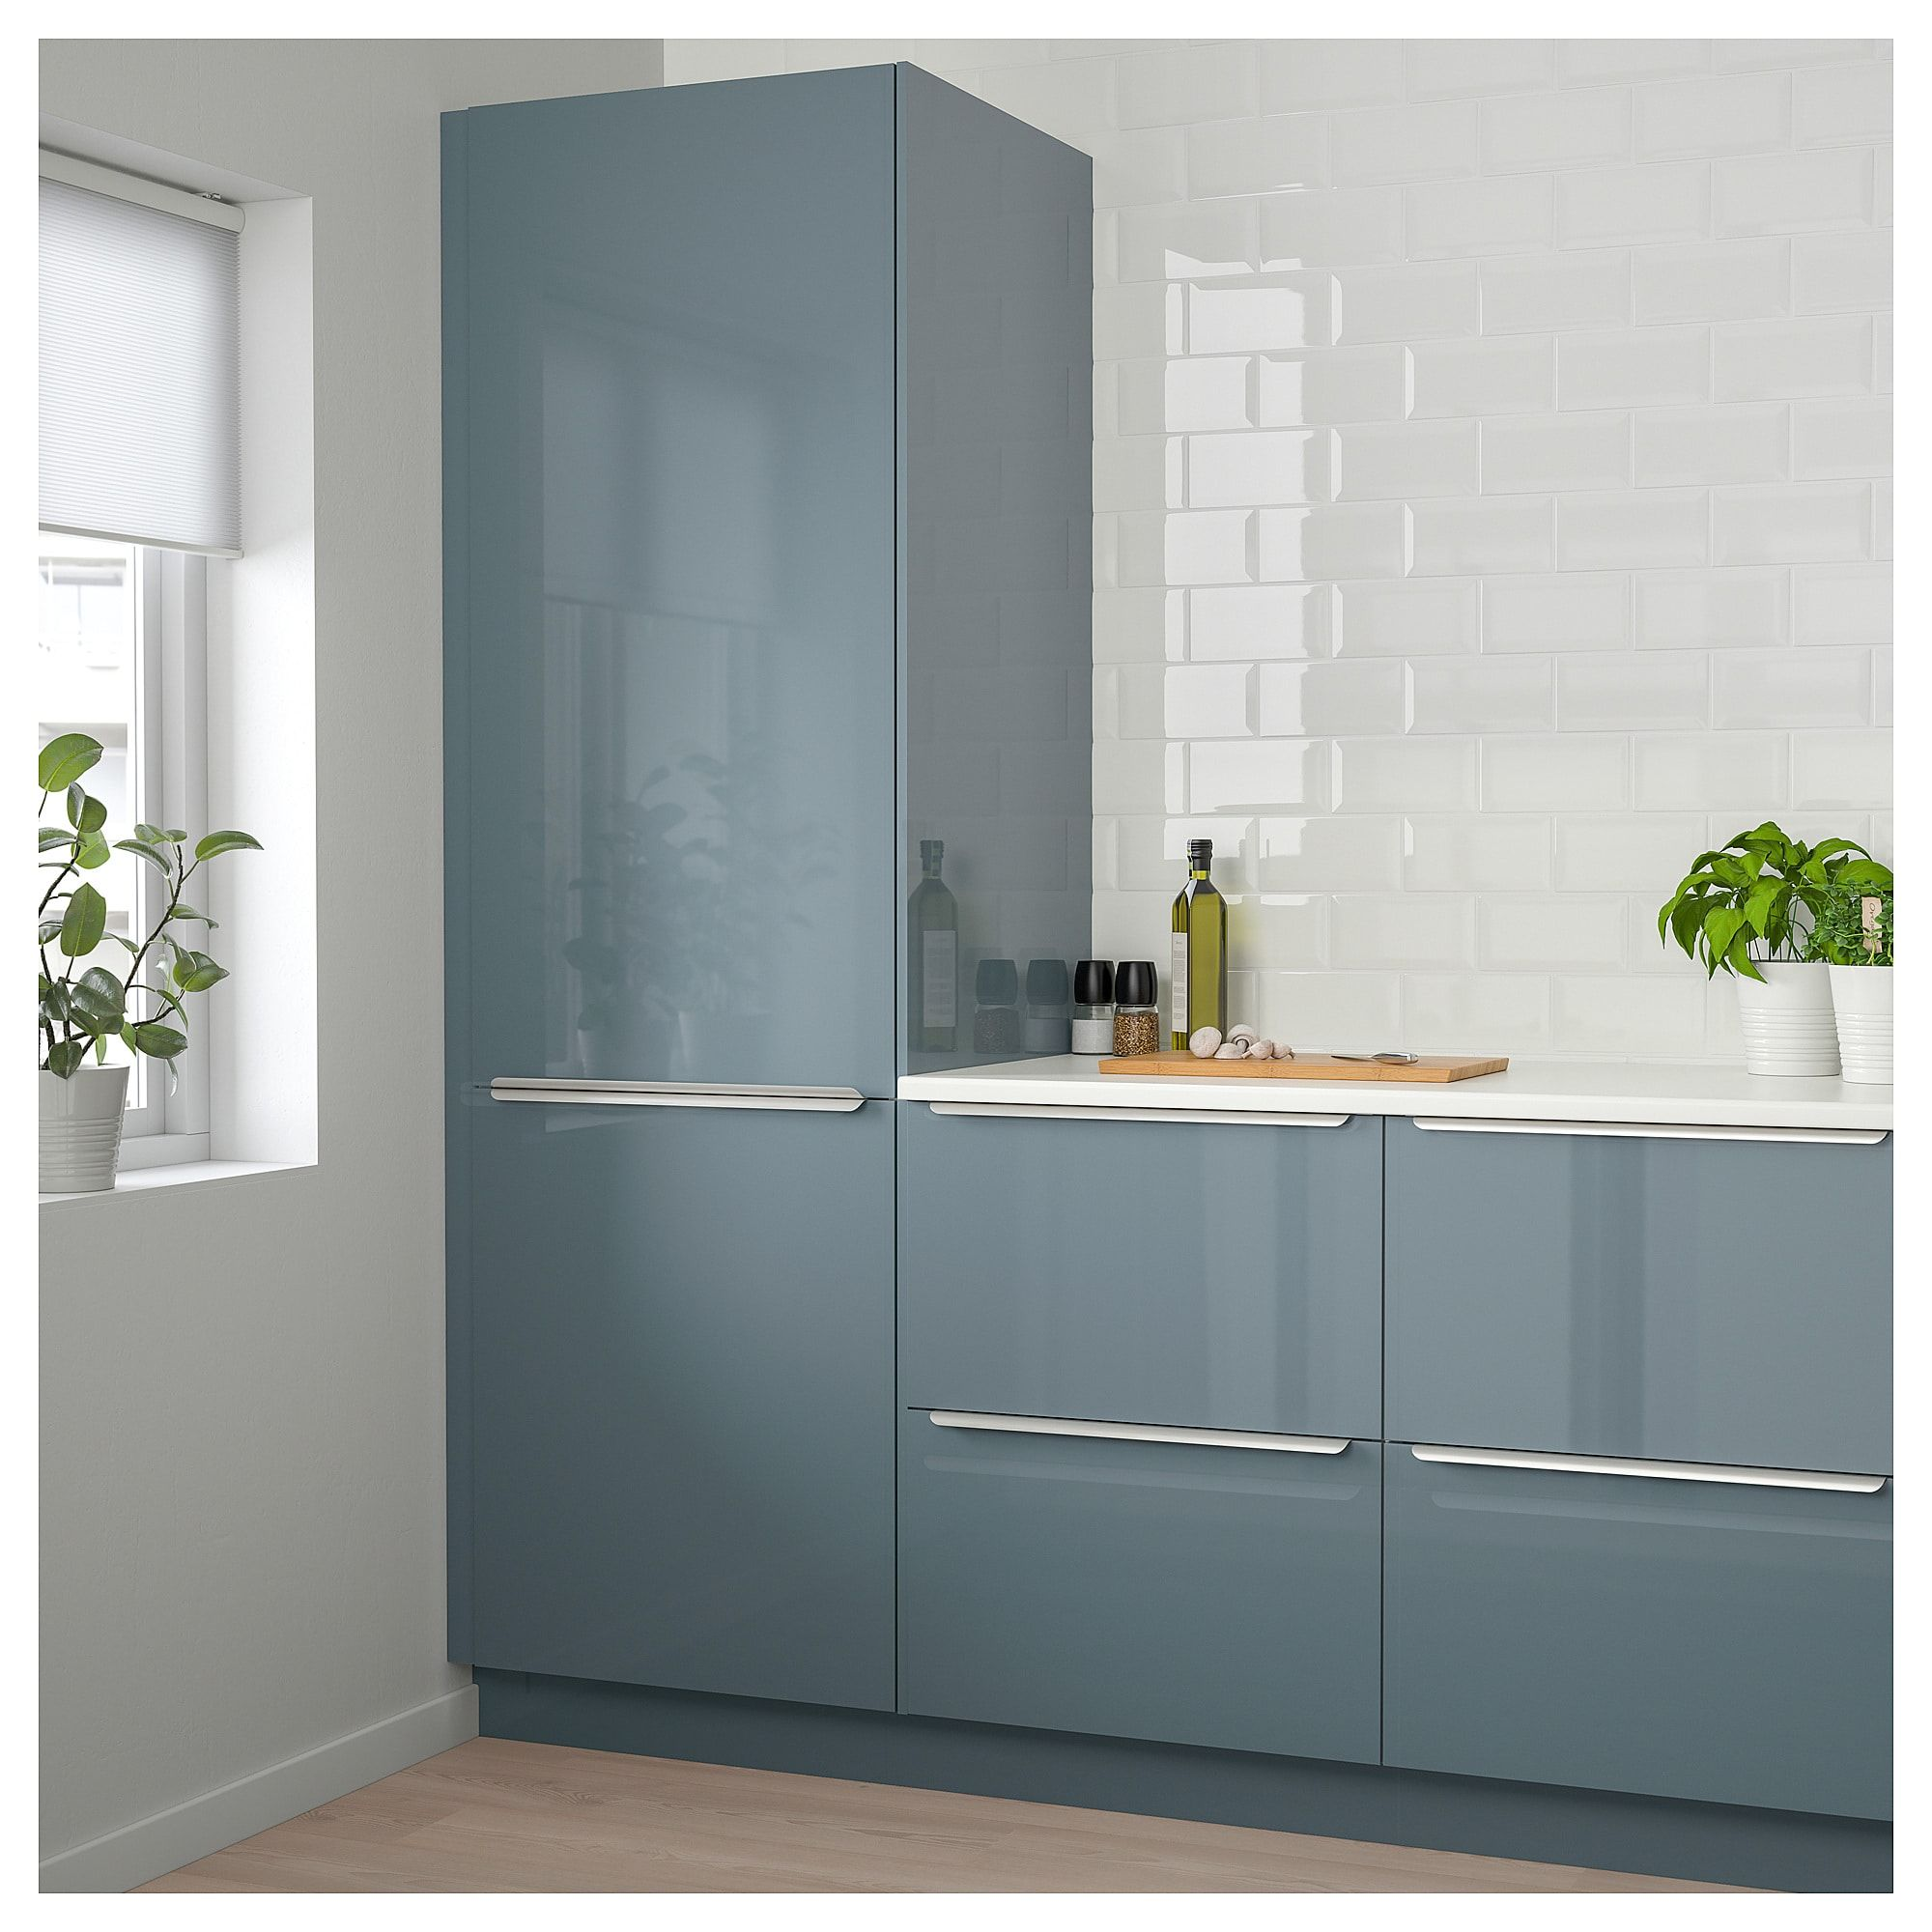 Best Ikea Kallarp Door High Gloss Gray Turquoise In 2019 400 x 300